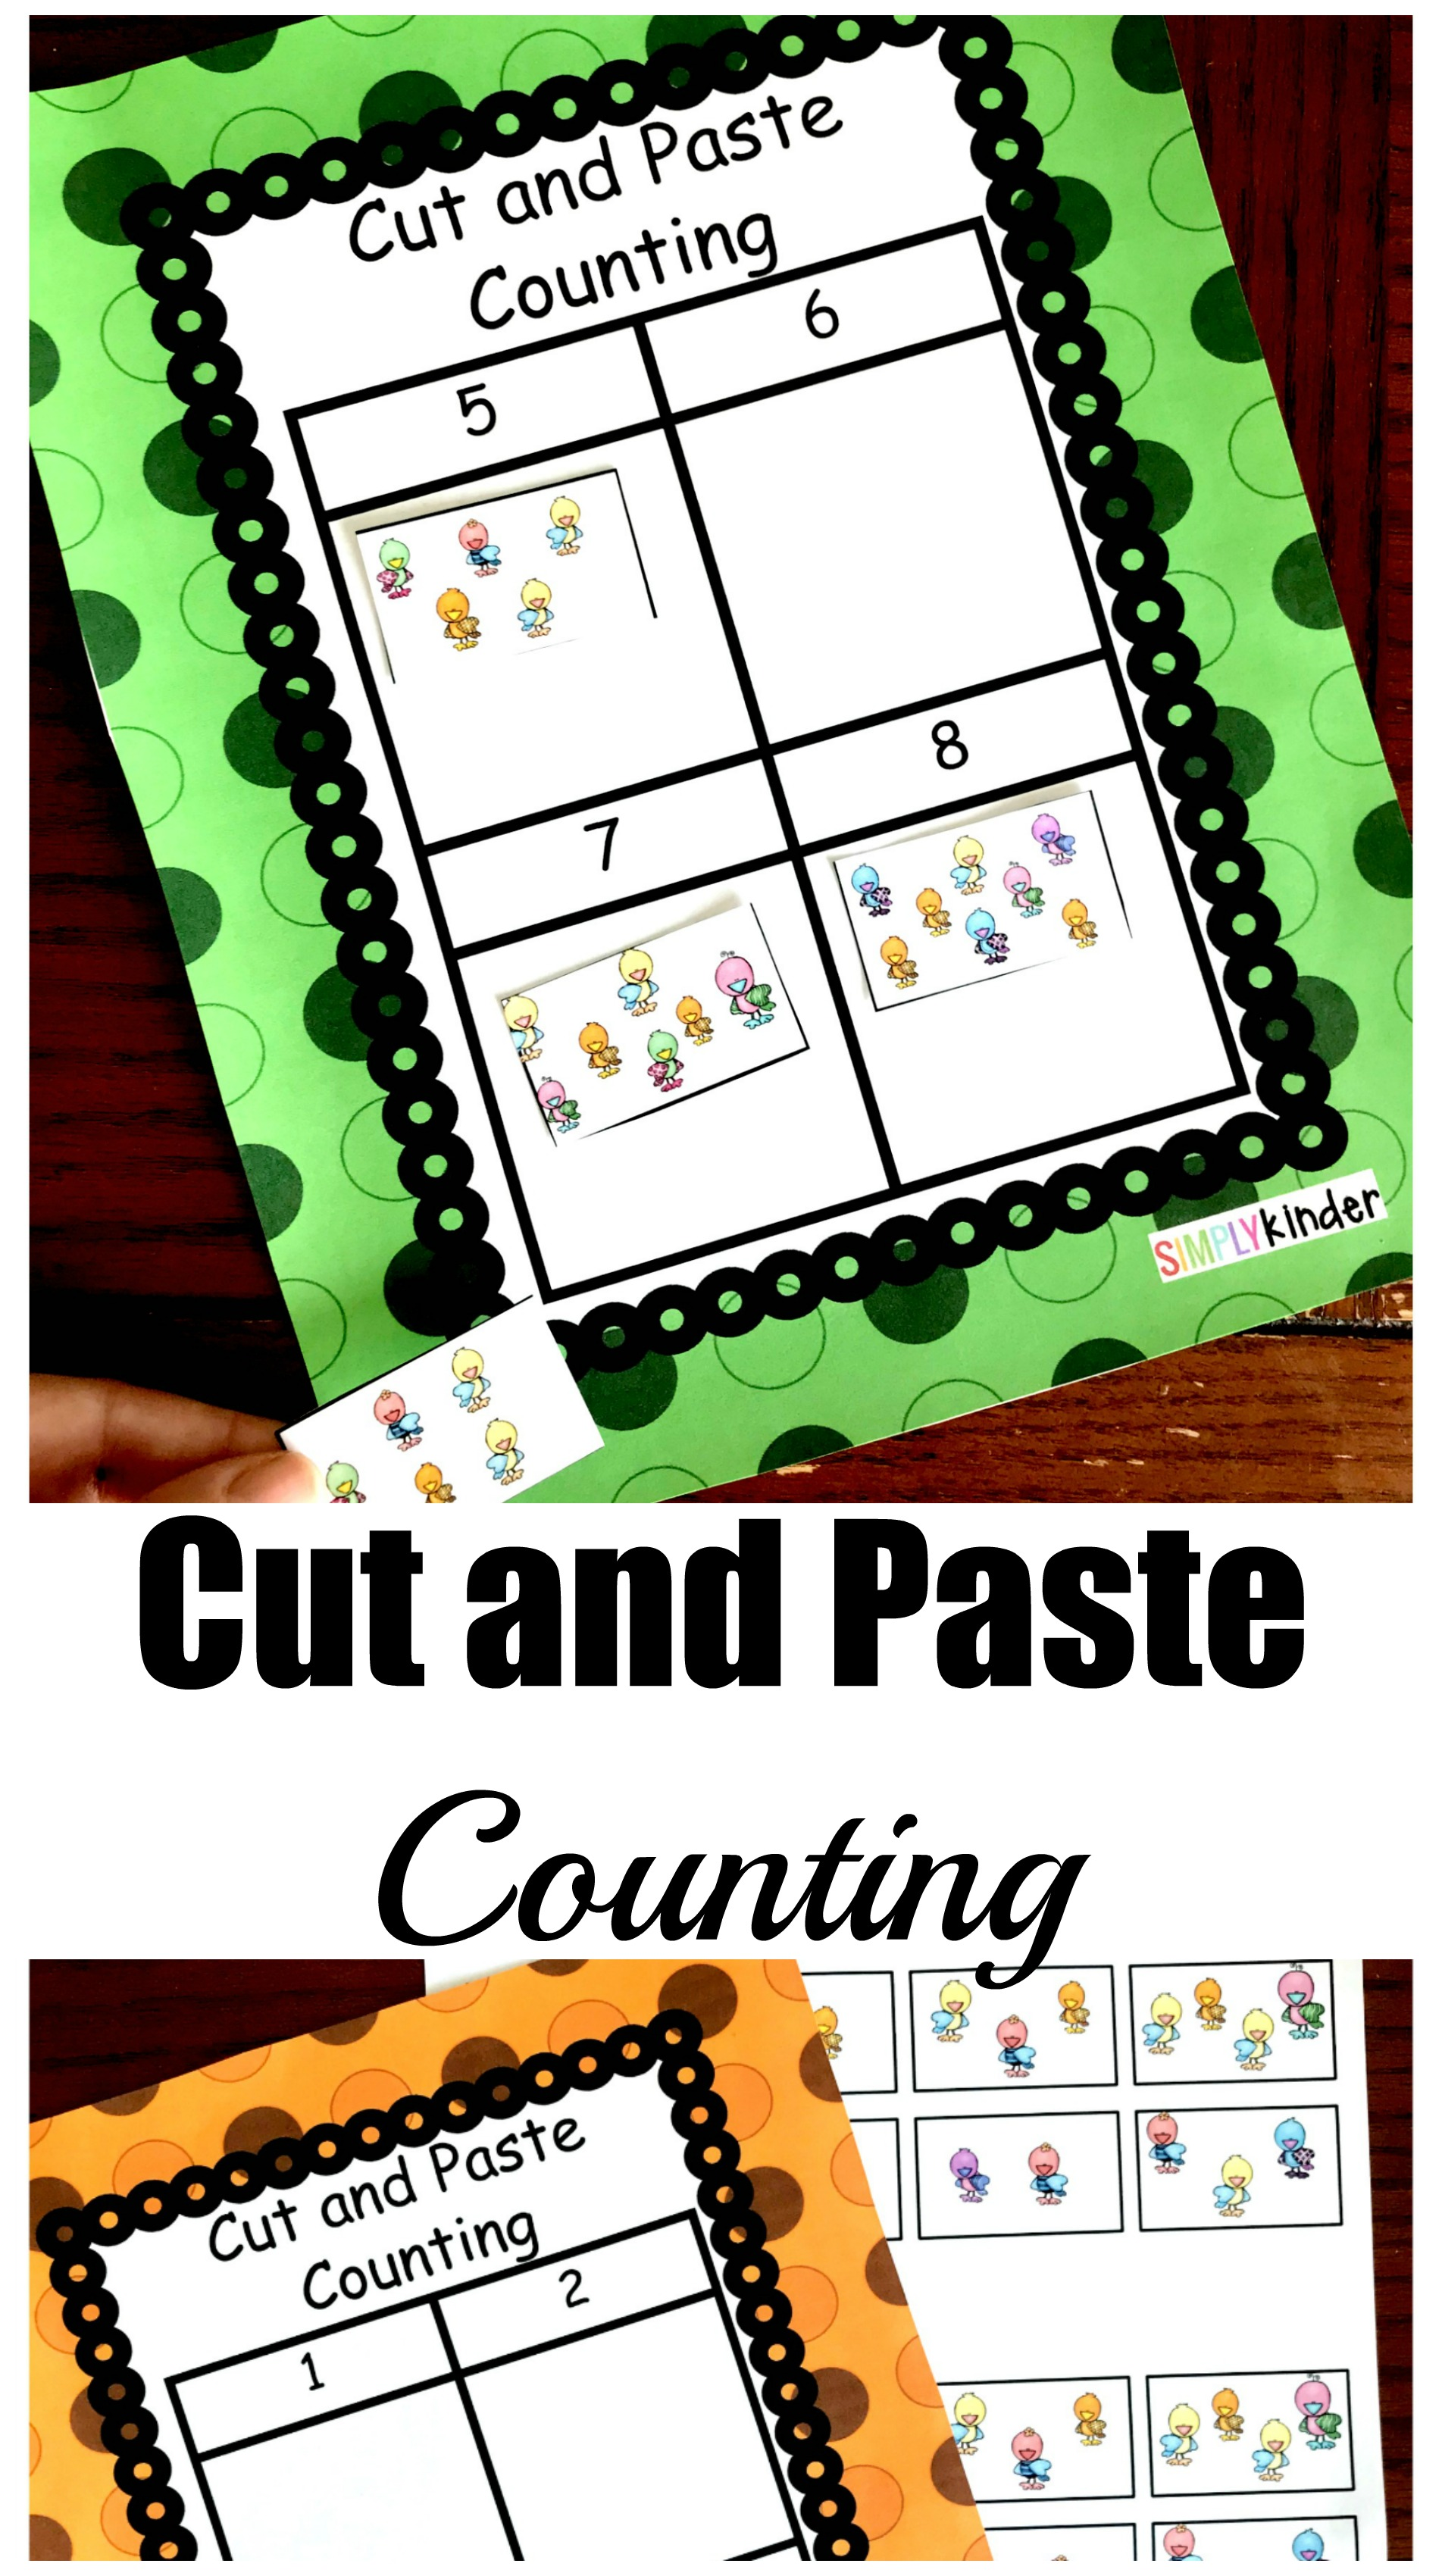 Free Cut and Paste Counting and Number Recognition Activity